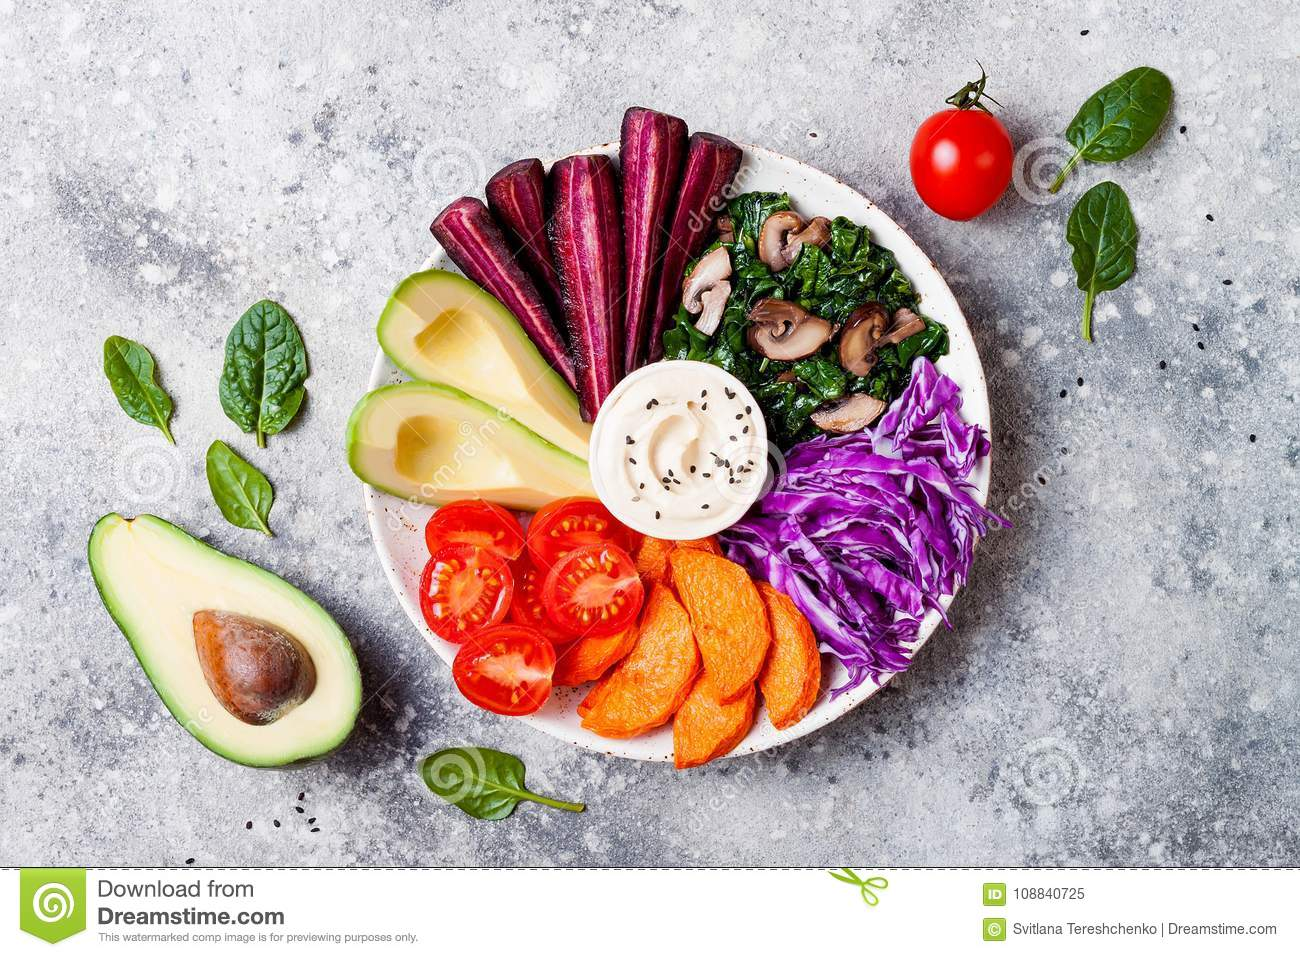 Buddha Bowl With Roasted Butternut Hummus Cabbage Healthy Vegetarian Appetizer Or Snack Platter Winter Veggies Detox Lunch Stock Image Image Of Diet Carrot 108840725